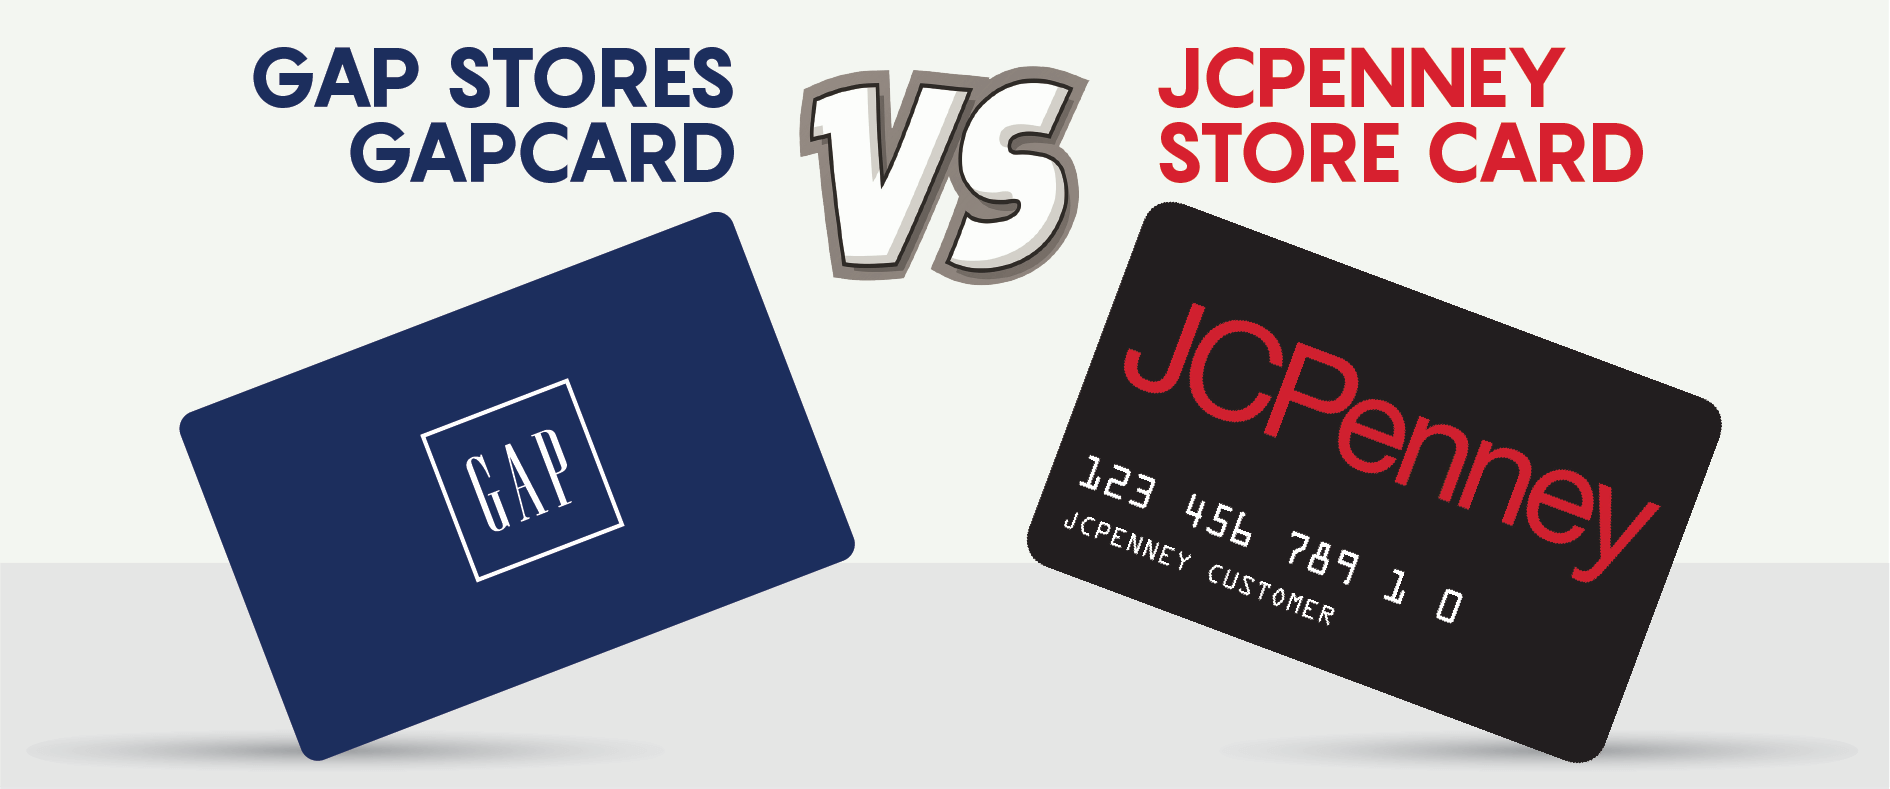 Stores Credit Card The Gapcard Vs Jcpenney 39s Store Credit Card Creditloan